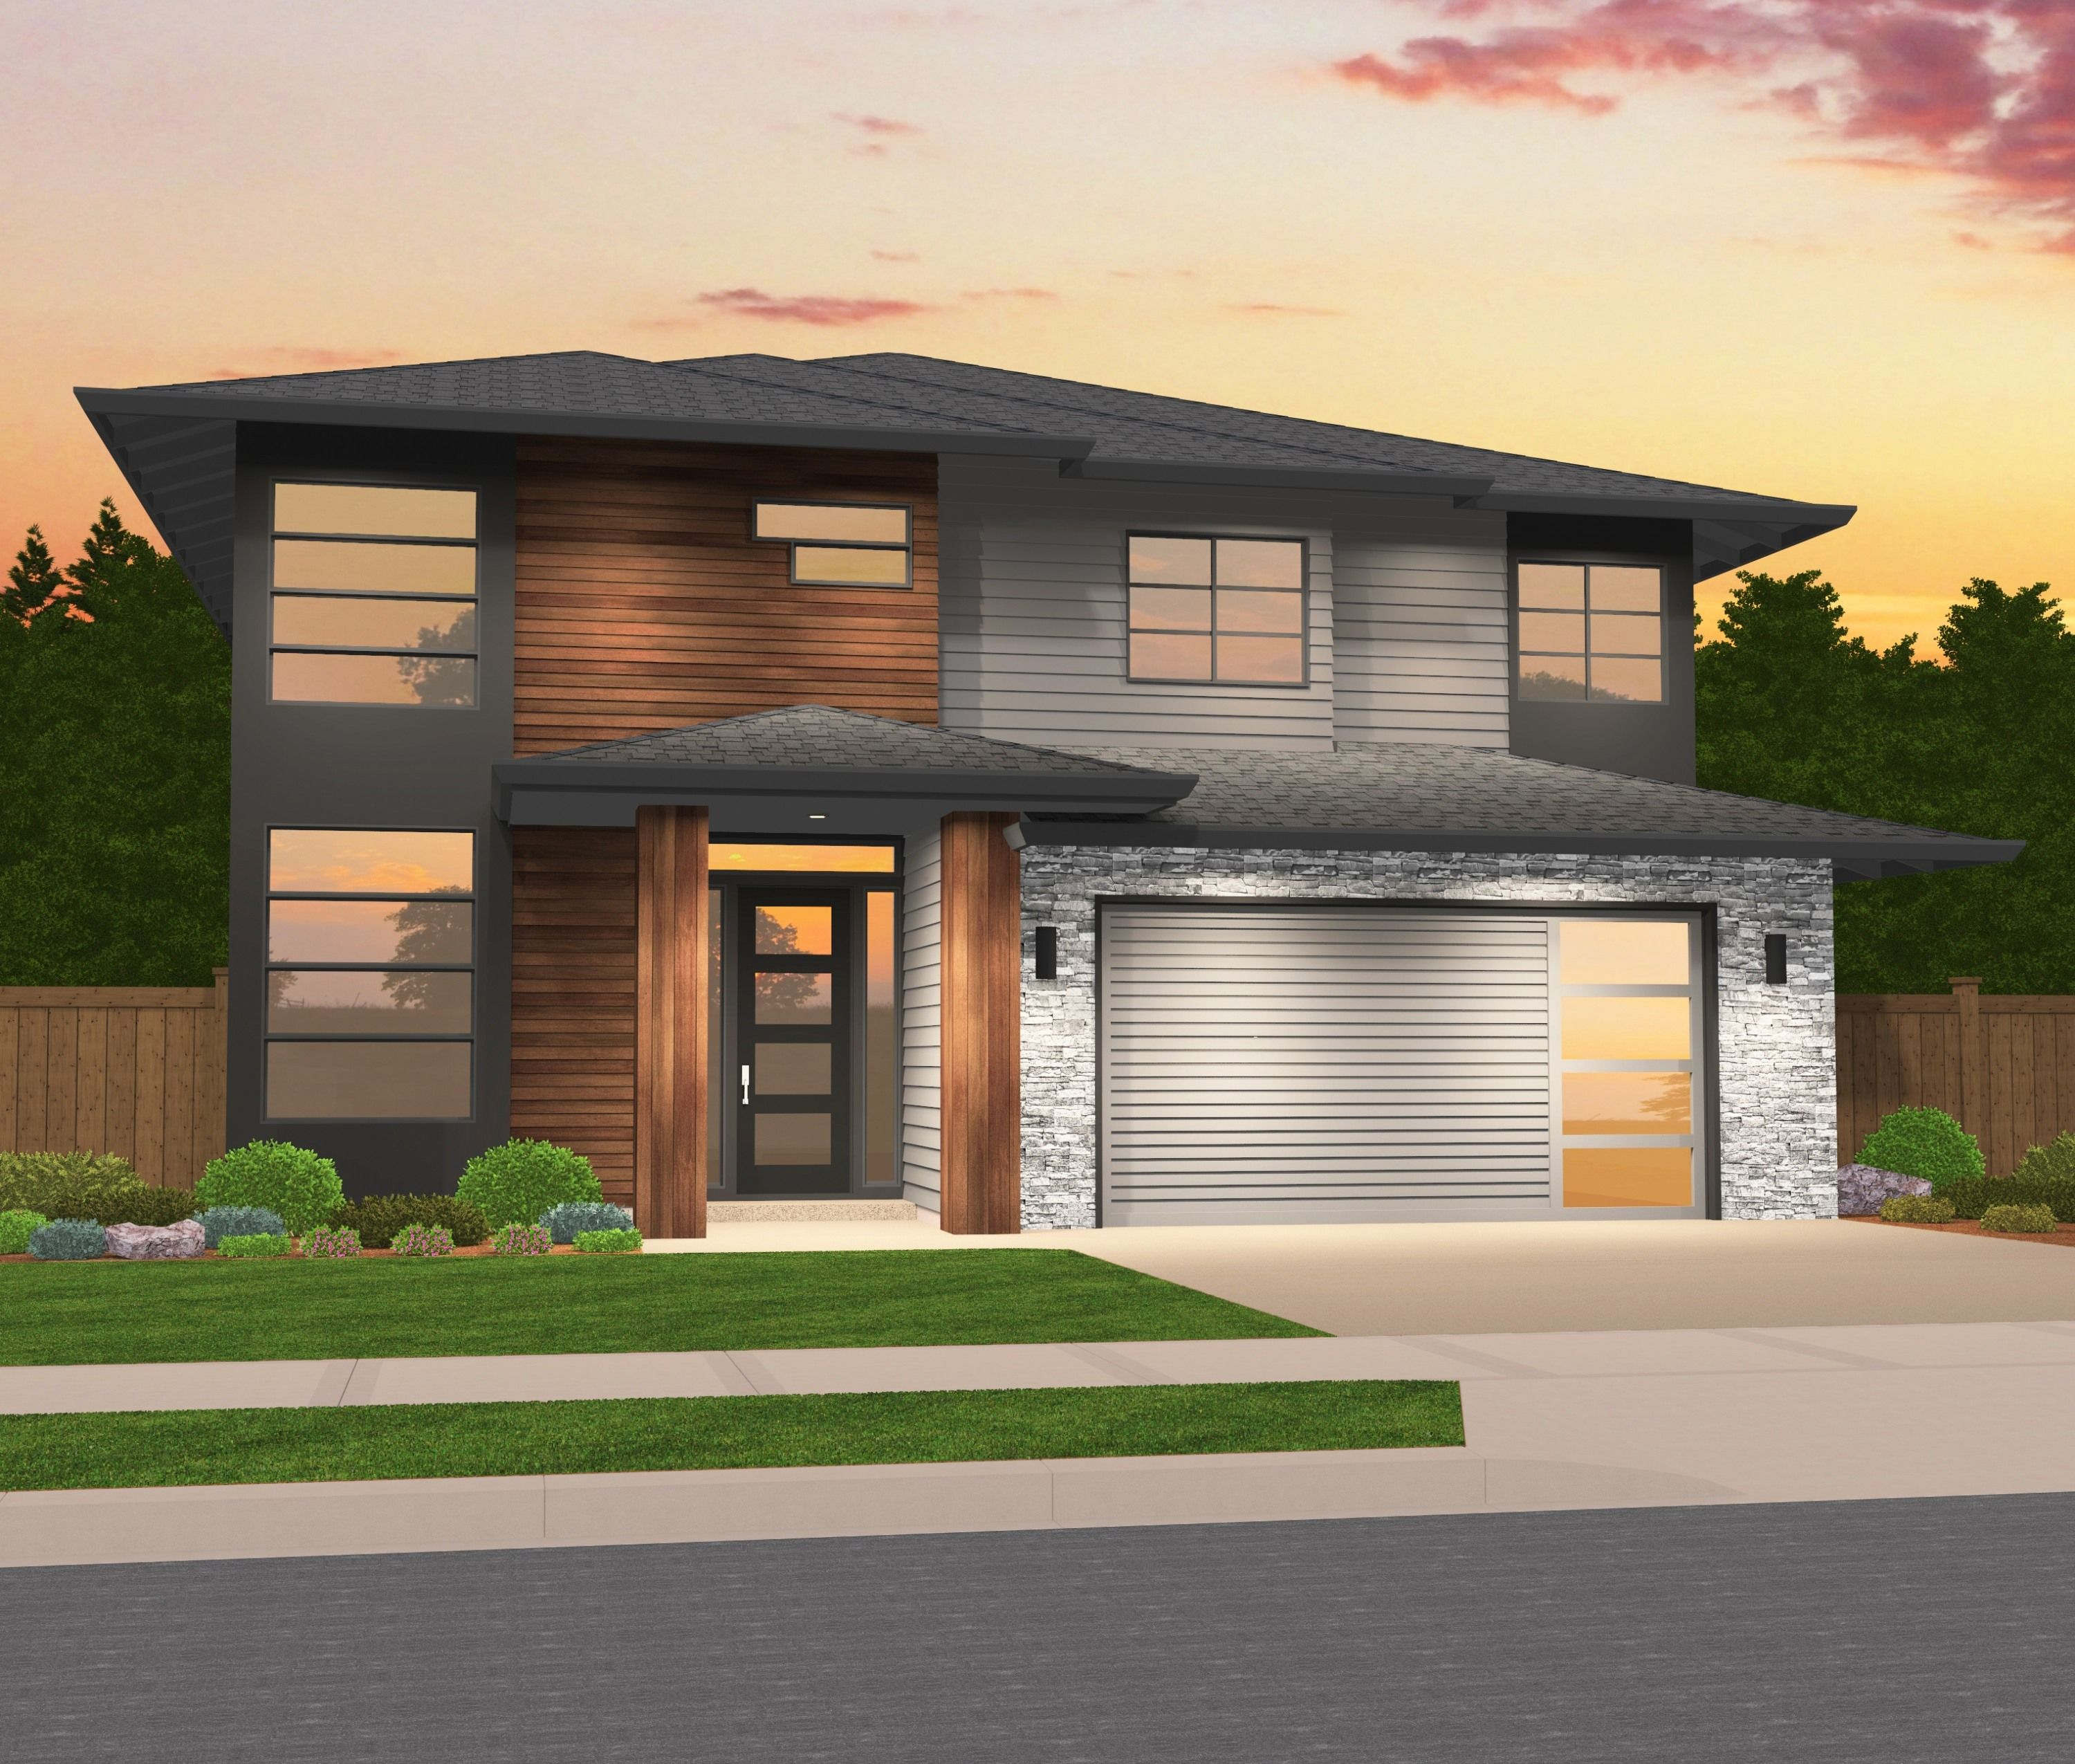 Image Result For Modern With Hip Roof Prairie Style Houses Modern House Plans Contemporary House Plans